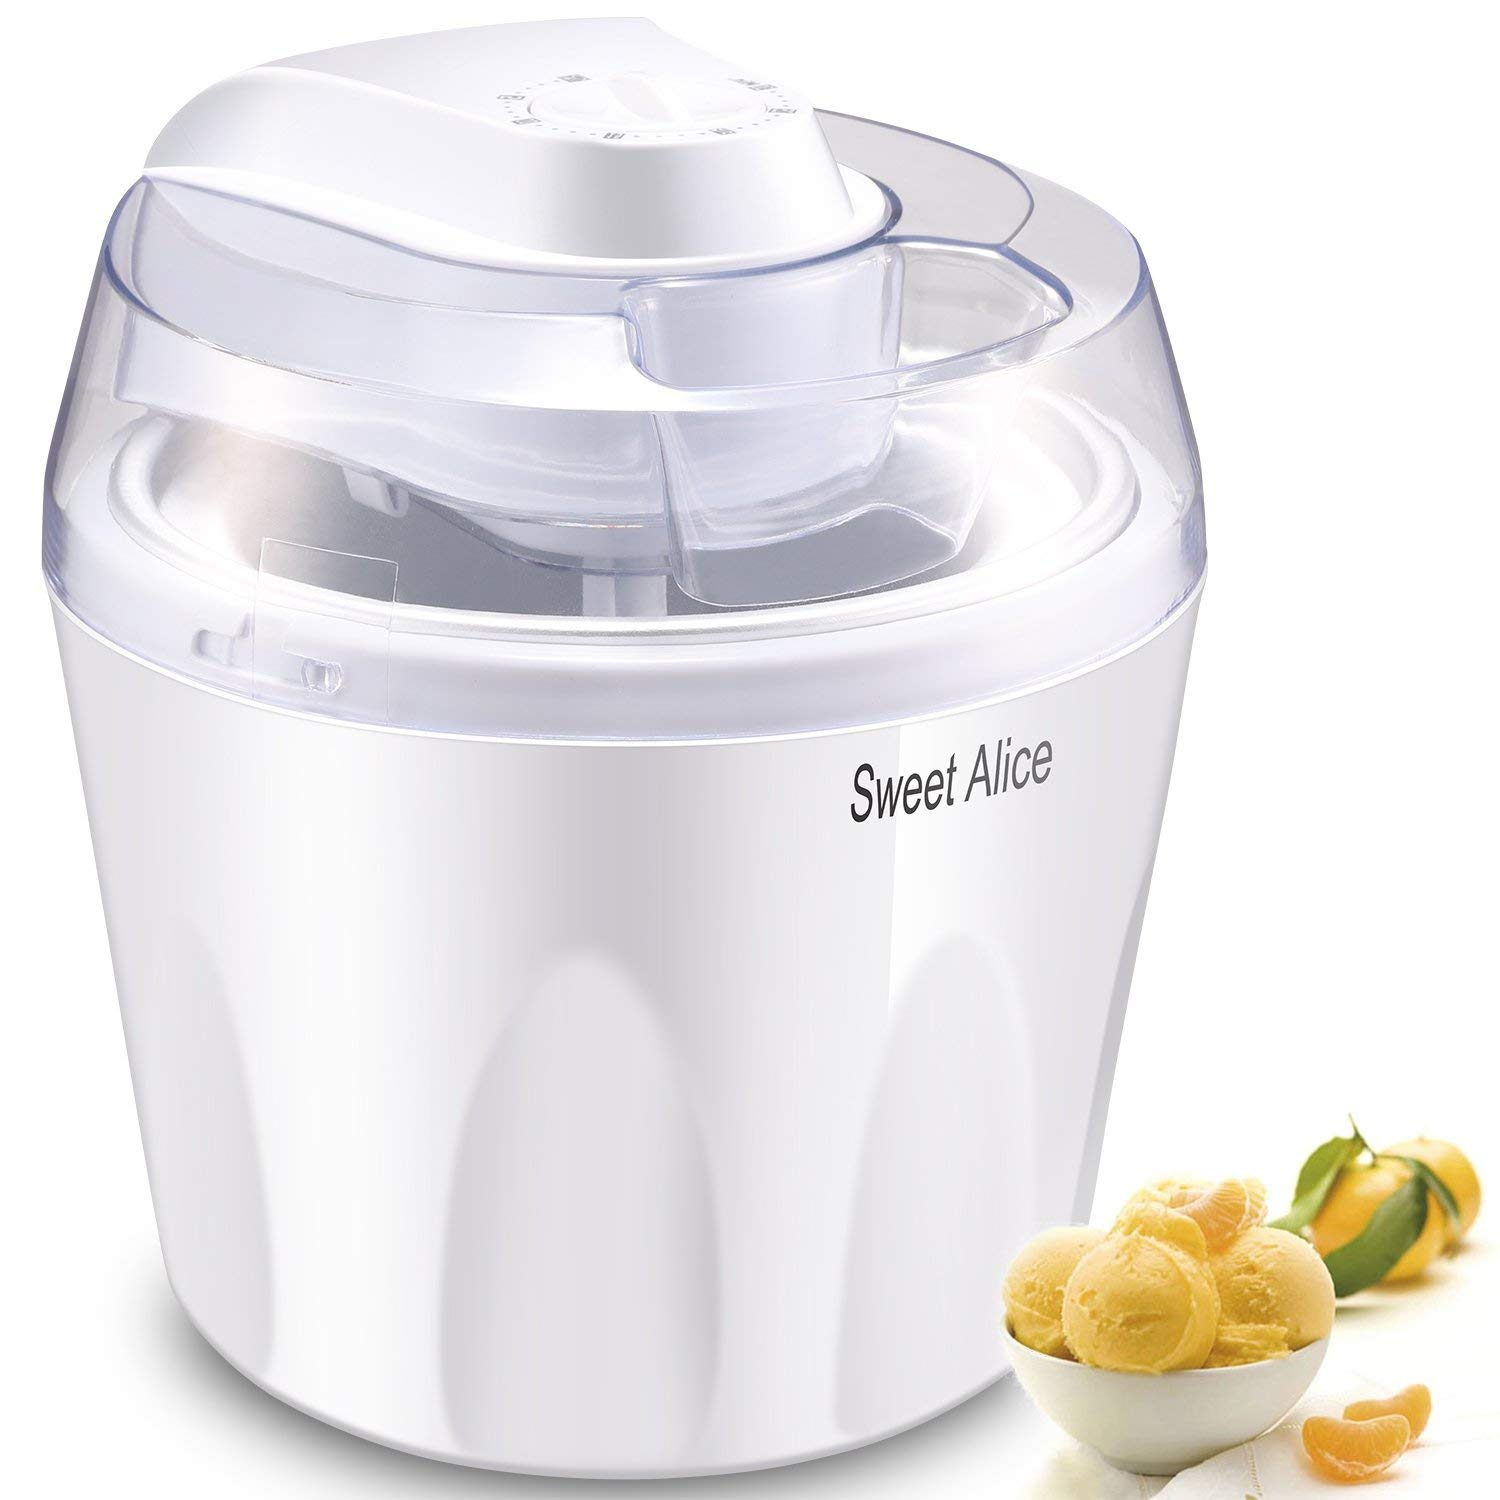 Ice Cream Maker, Sweet Alice 1.5 liter Ice Cream Maker, 3 in 1 Ice Cream Maker, with Timer & Recipe Suggestions, Sorbet Machine Yogurt Maker, Ice Cream Makers White for the Home